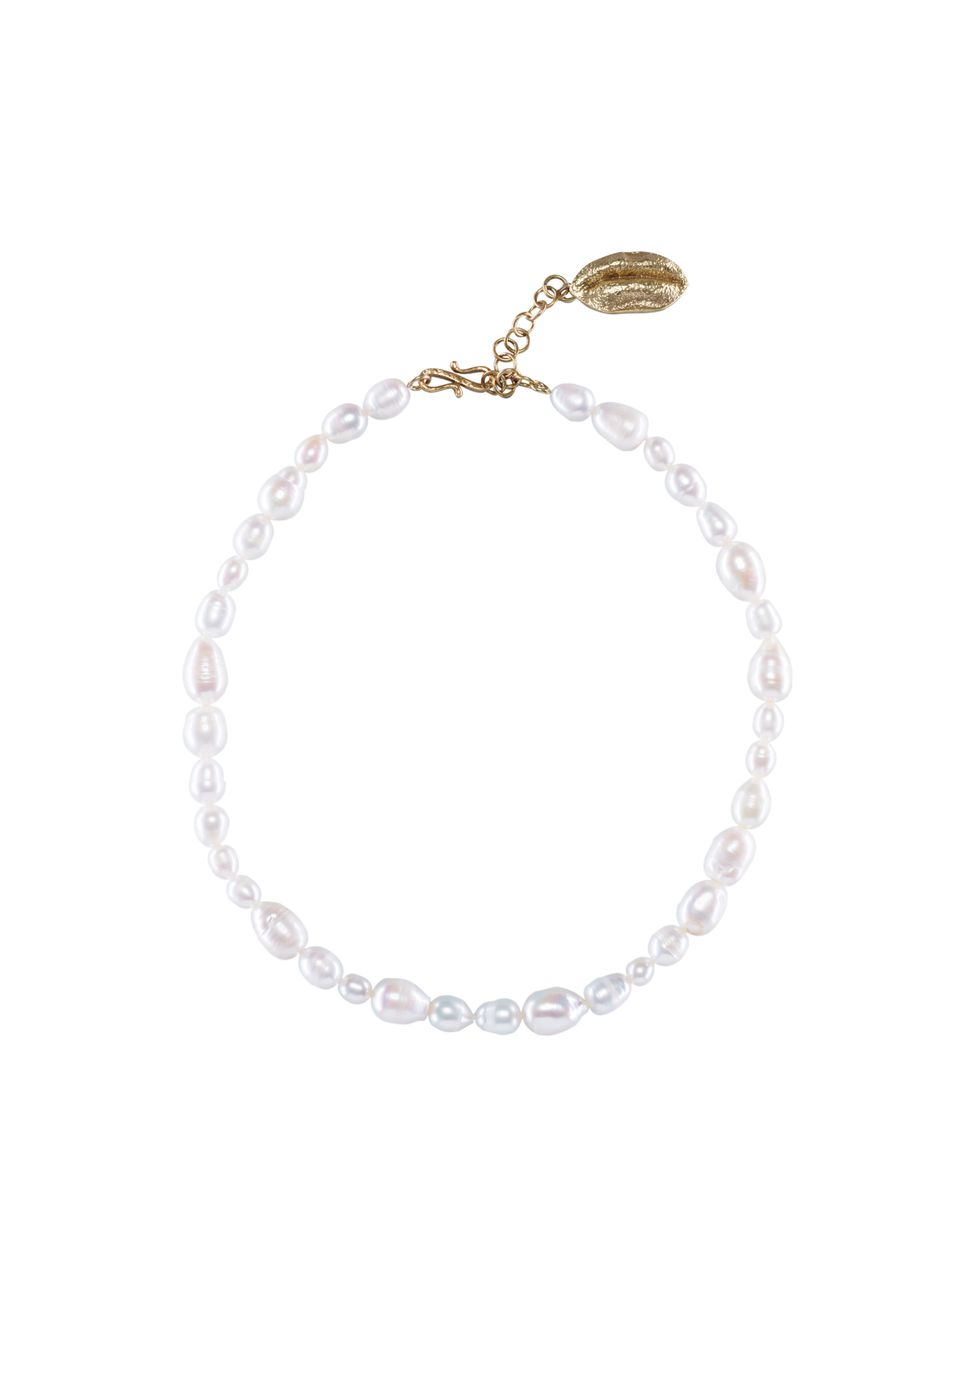 GV Freshwater Pearl Necklace